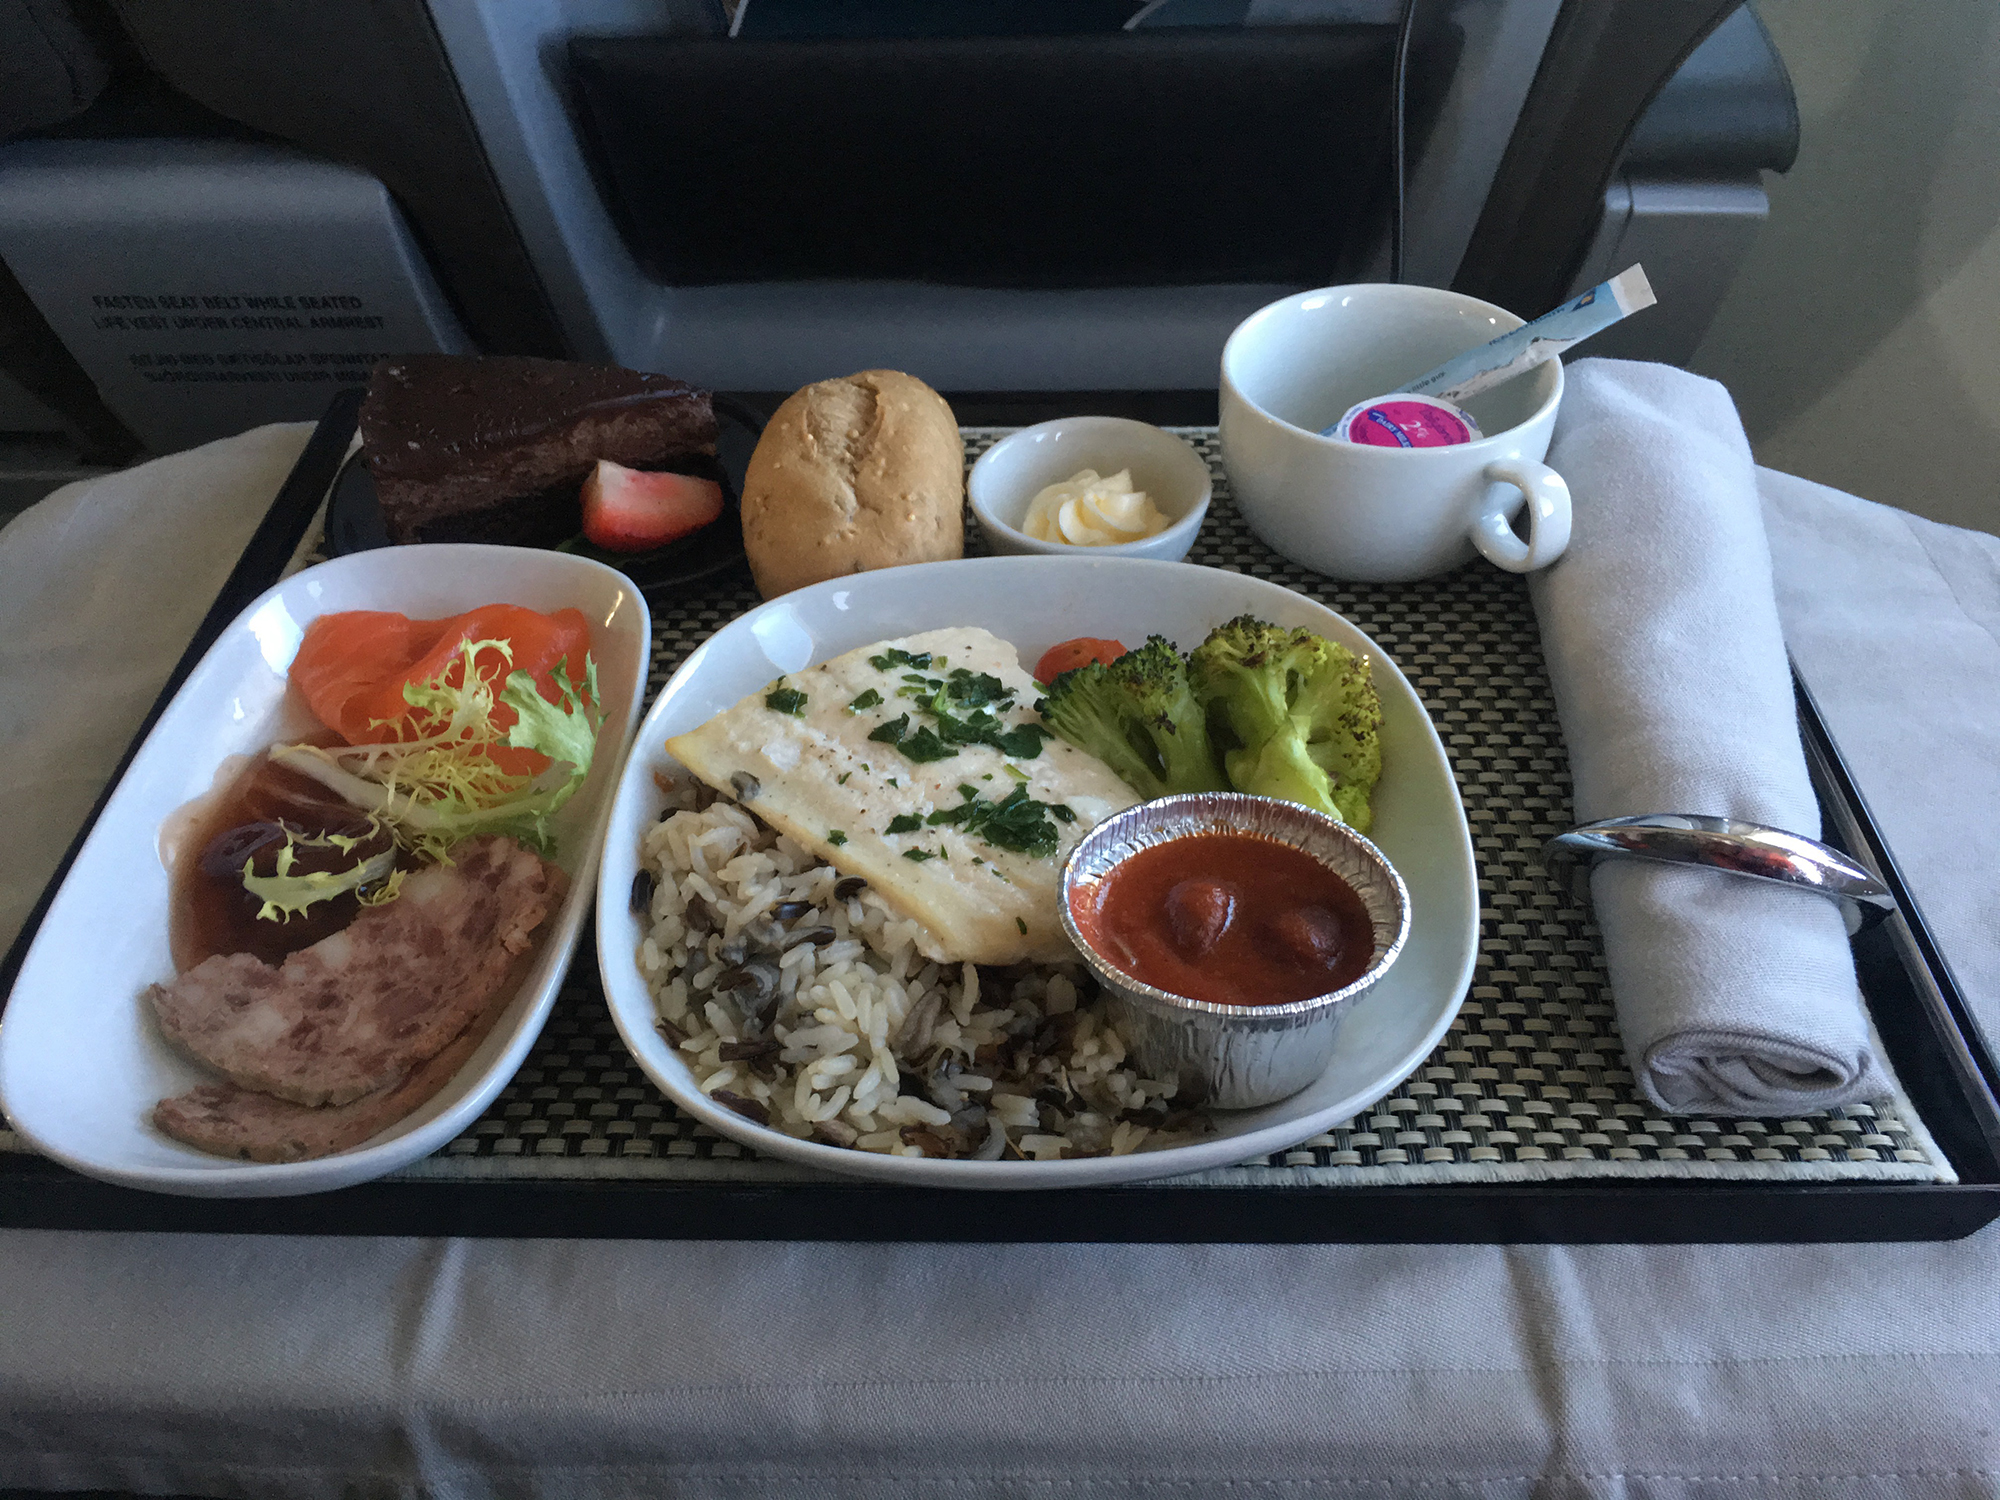 Icelandair main meal on YVR-KEF flight segment.